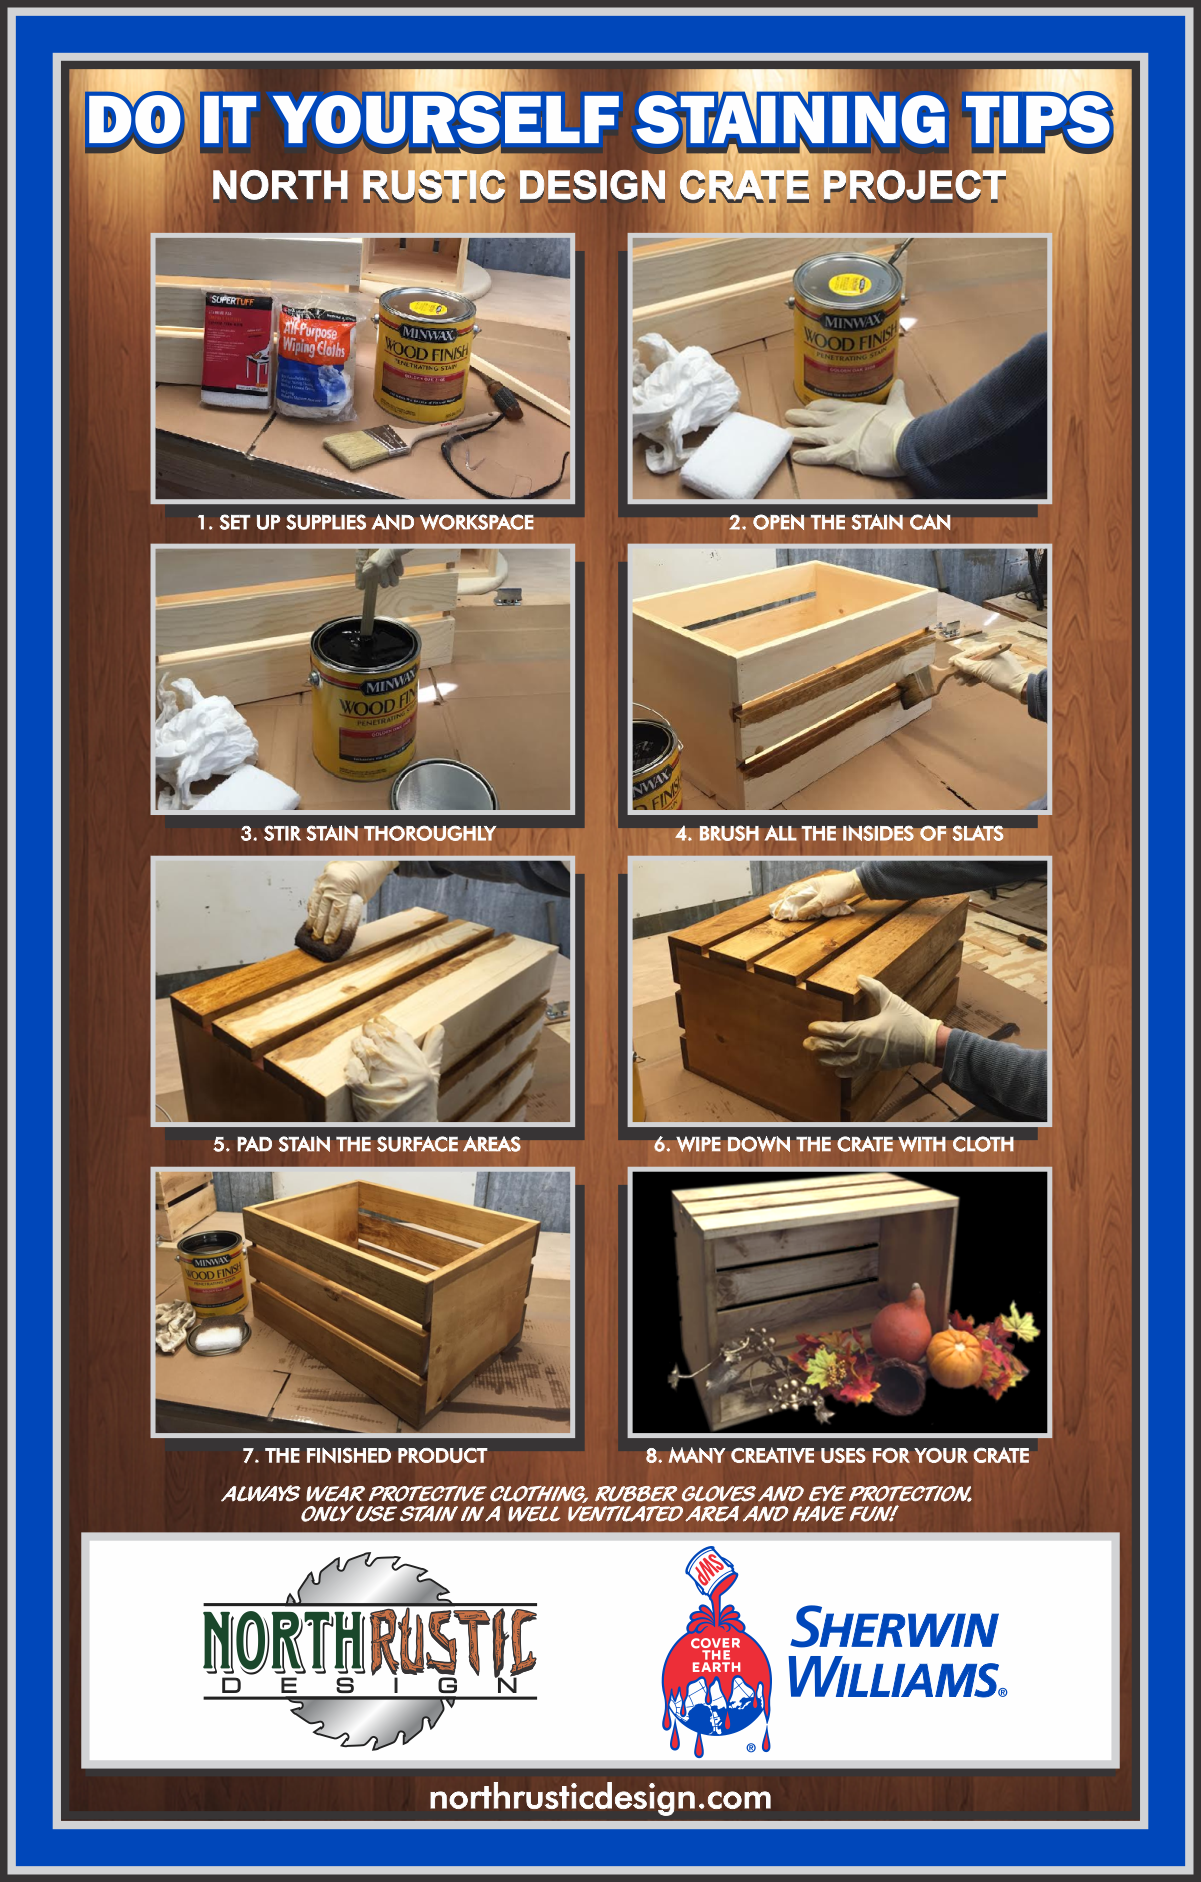 How To Stain A Wooden Crate North Rustic Design